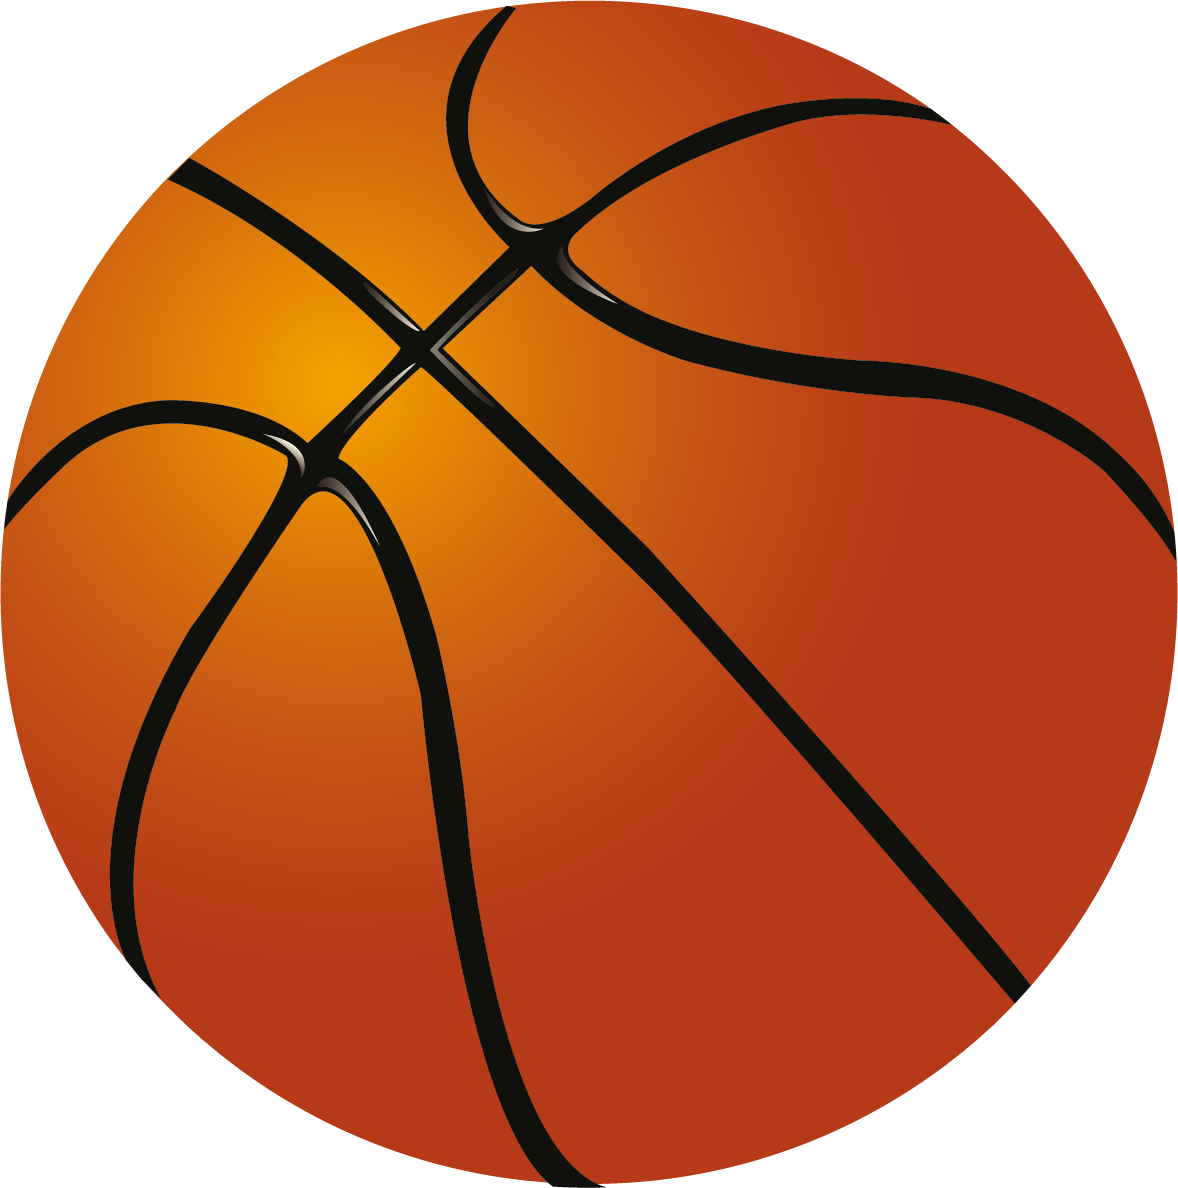 Basketball Shirt Clipart - ClipArt Best